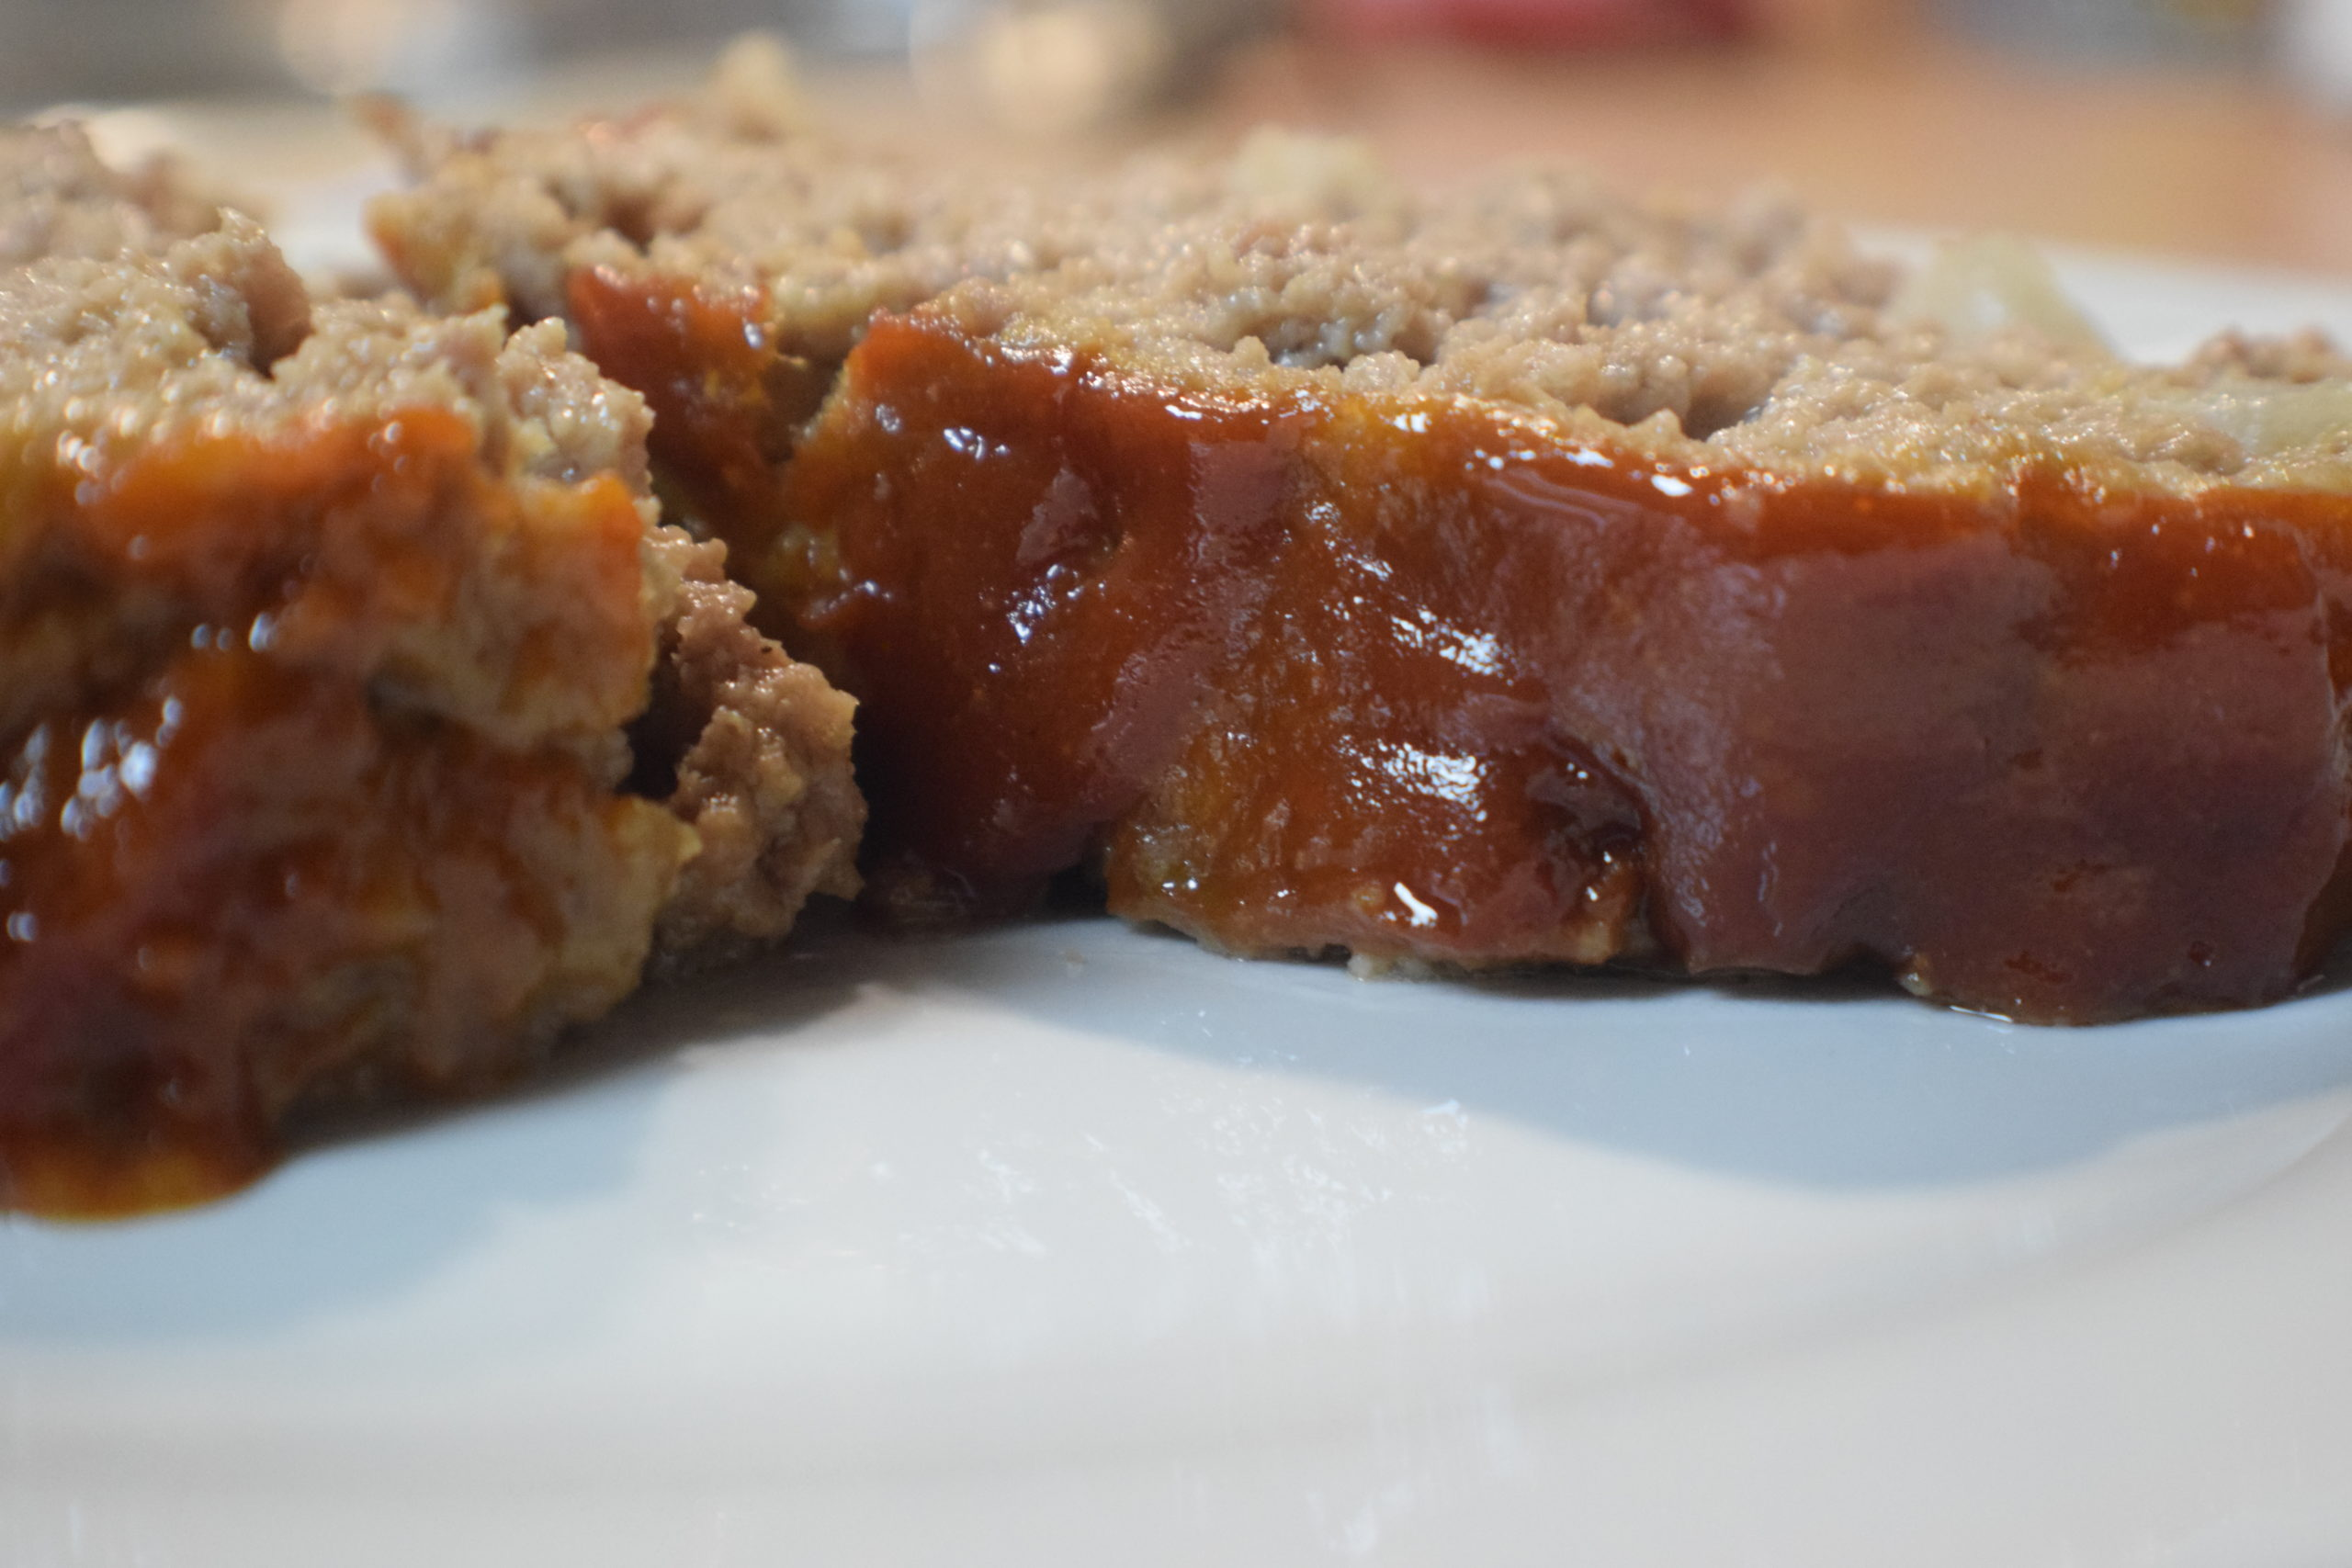 two pieces of meatloaf with red sauce on white plate